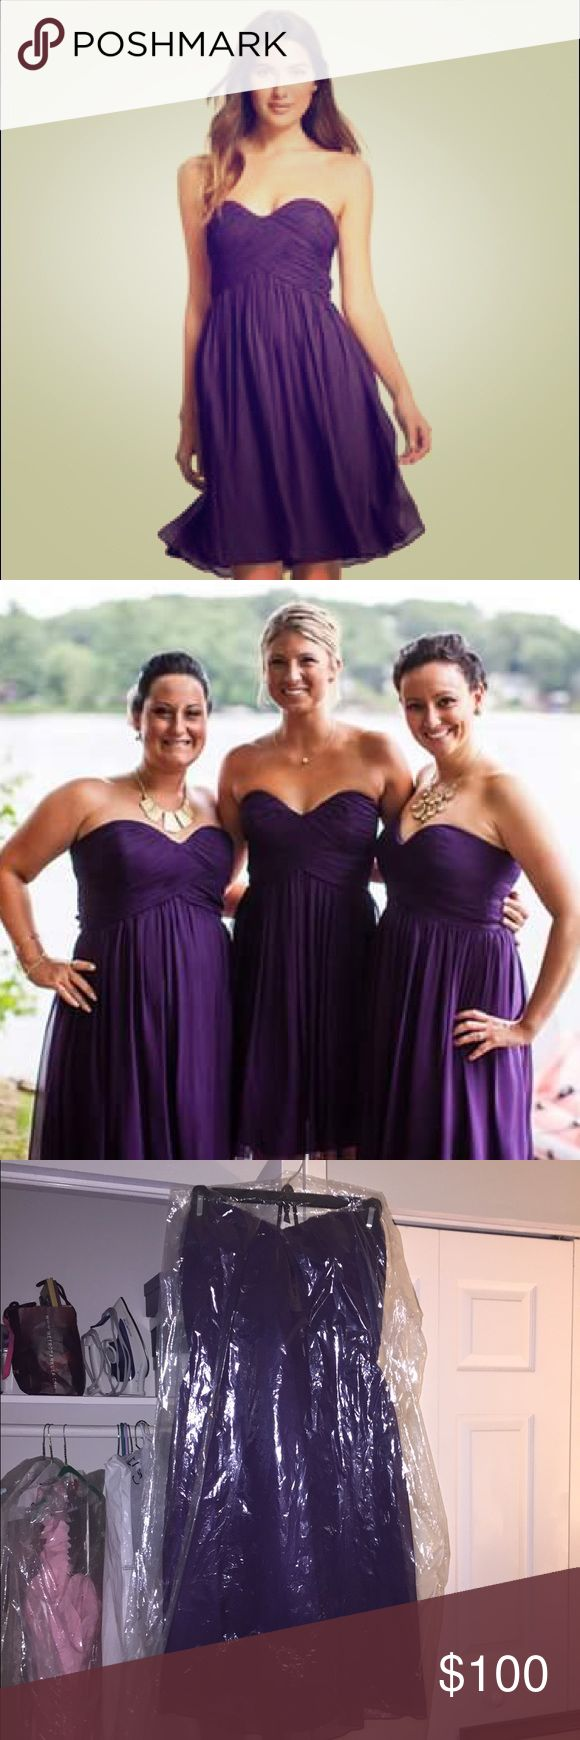 DONNA MORGAN STRAPLESS CHIFFON BRIDESMAID GOWN Worn once! Great condition. So cute. Awesome color. Donna Morgan Dresses Strapless